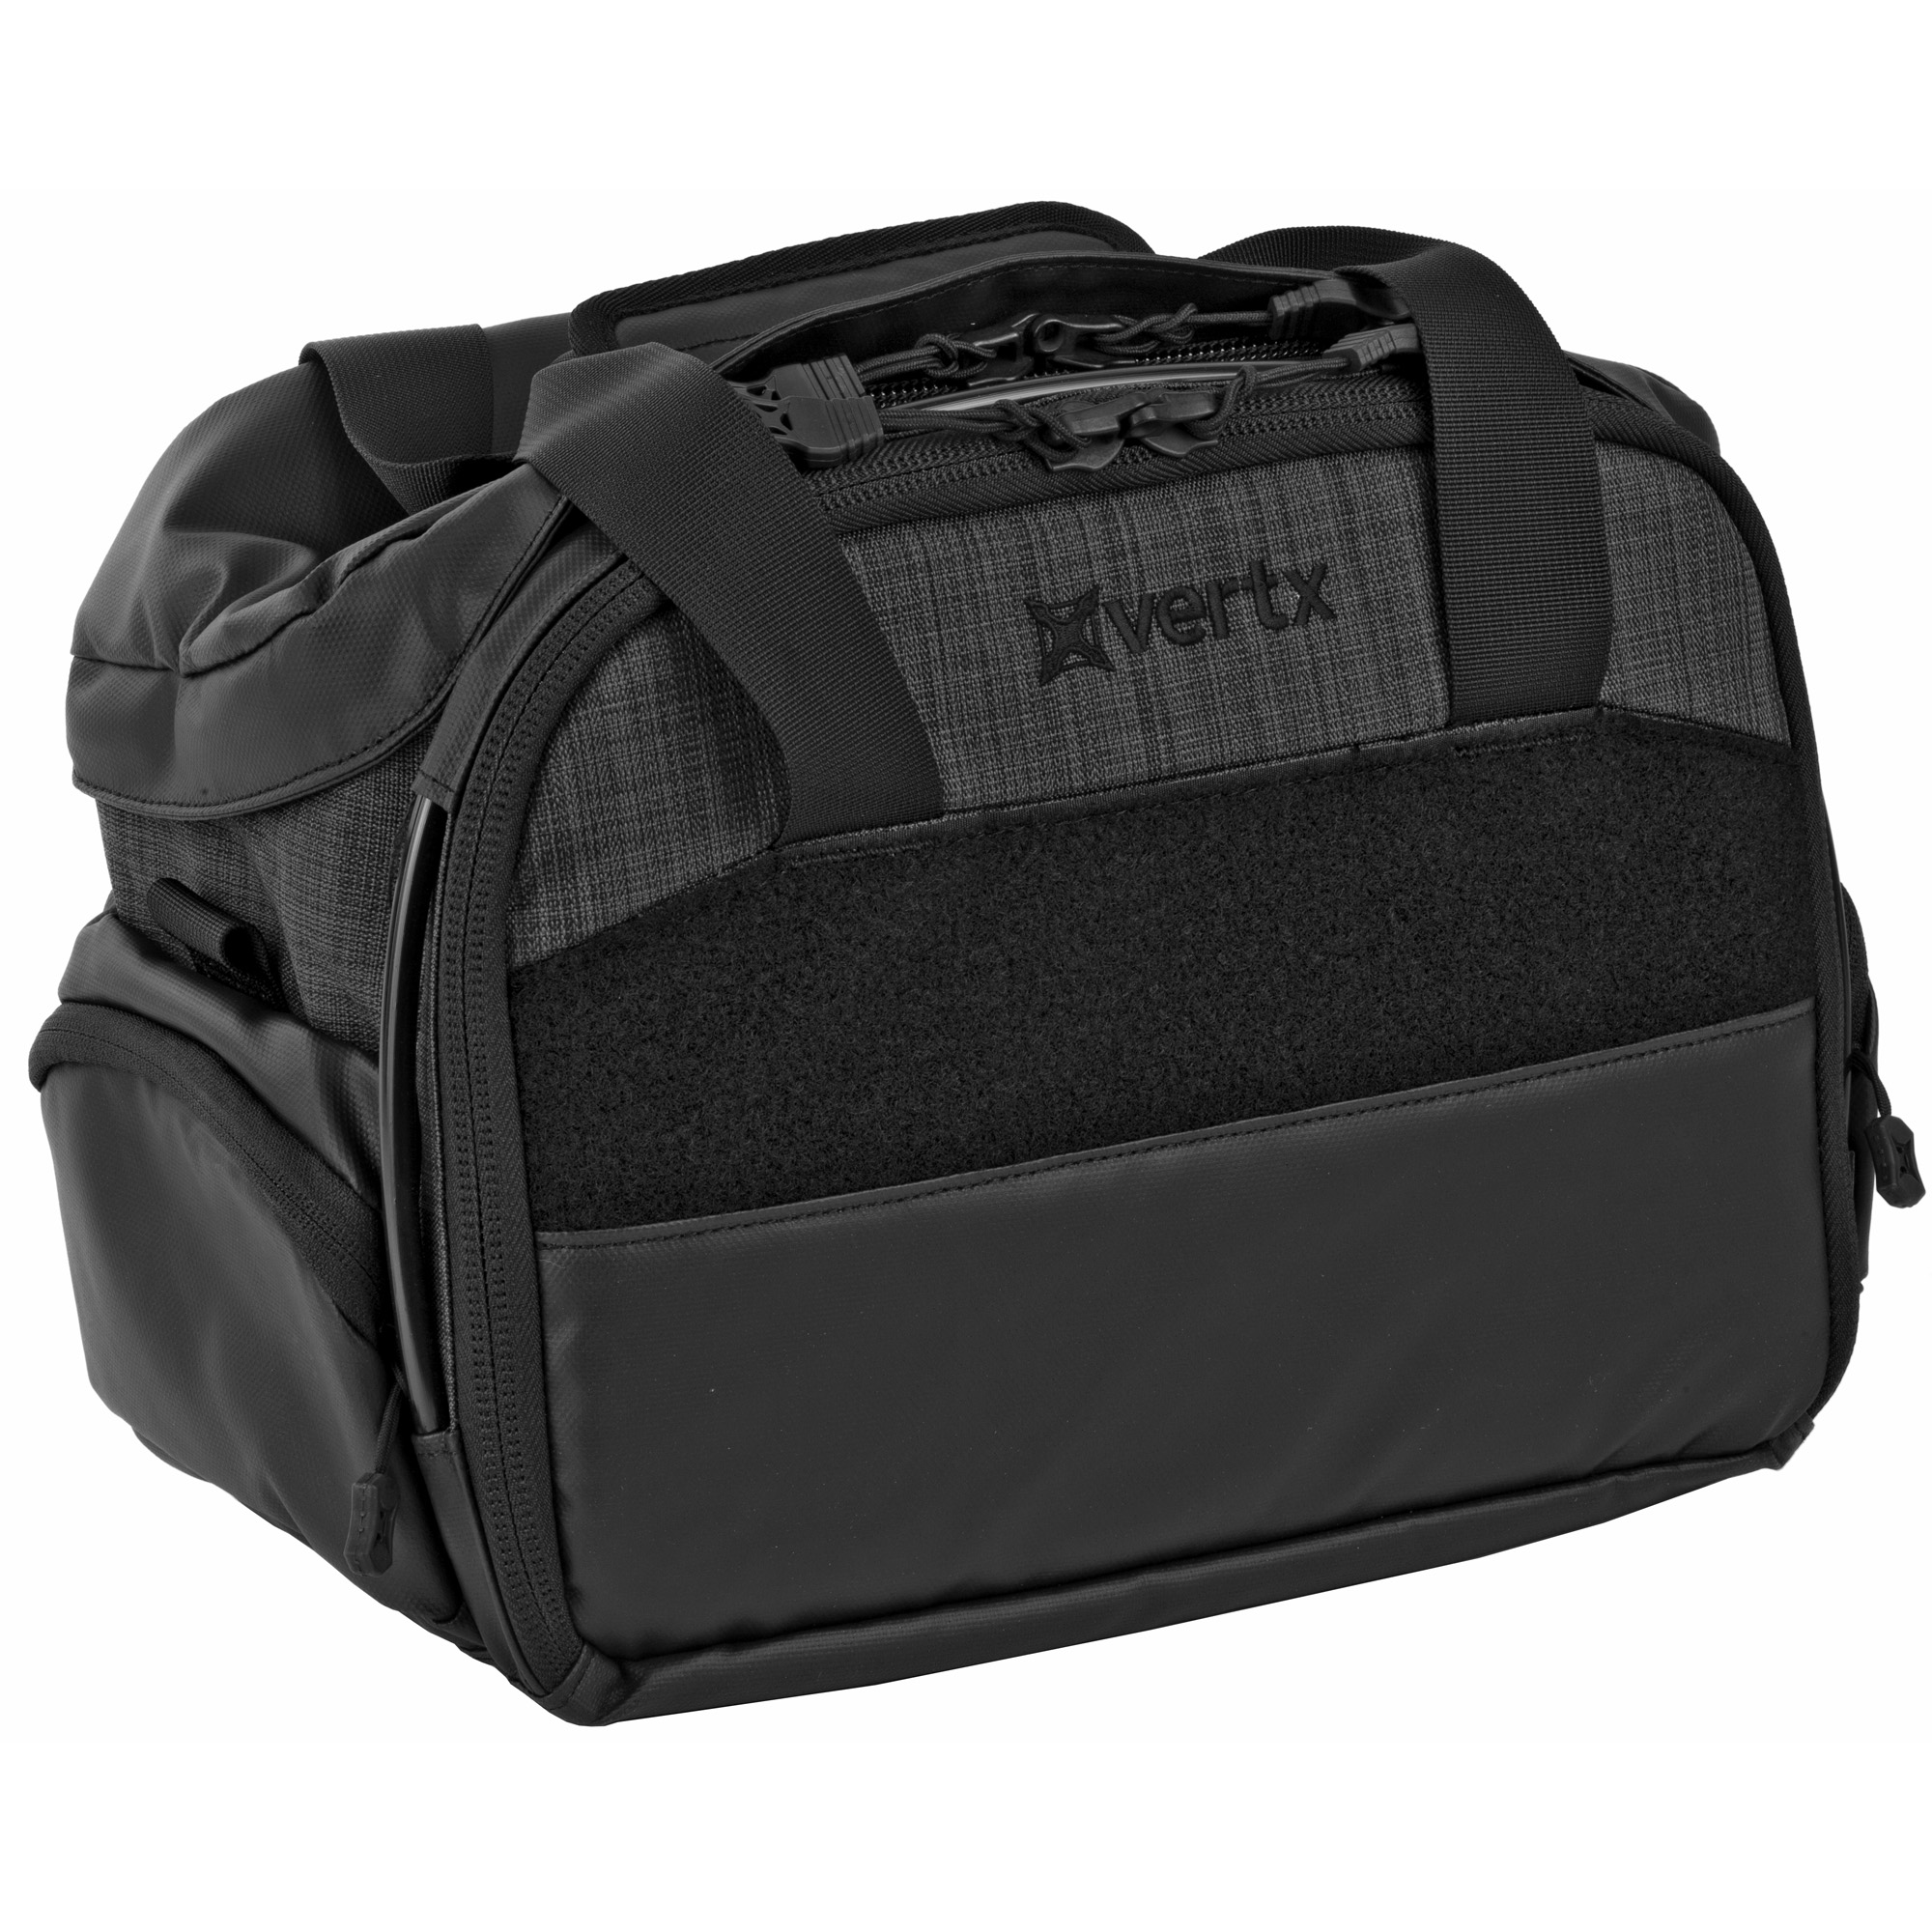 """Vertx Course of Fire (COF) Light Range Bags provide effortless organization with numerous spaces and pockets to keep your kit squared away. Robust materials and easy-wipe side and bottom surfaces ensure you'll get long-term service from these bags. The unique security lock-down cable system runs the length of the bags"""" giving you multiple options for securing it to your vehicle"""" reducing chances of a quick smash-and-grab. Internal hard dividers and padded panels provide structure and protection for weapons"""" tools and other gear"""" while large VELCRO Brand loop surfaces give you the flexibility to position accessories and organizing pouches exactly where you want them. Removable ammo caddies and a six-pack mag carrier give you the ability to take just what you need to the line"""" and the adjustable/removable padded shoulder strap is especially convenient when you're loaded for a serious day of plinking. Don't settle for aggravation and disorganization"""" set your sights on a Vertx COF Range Bag."""